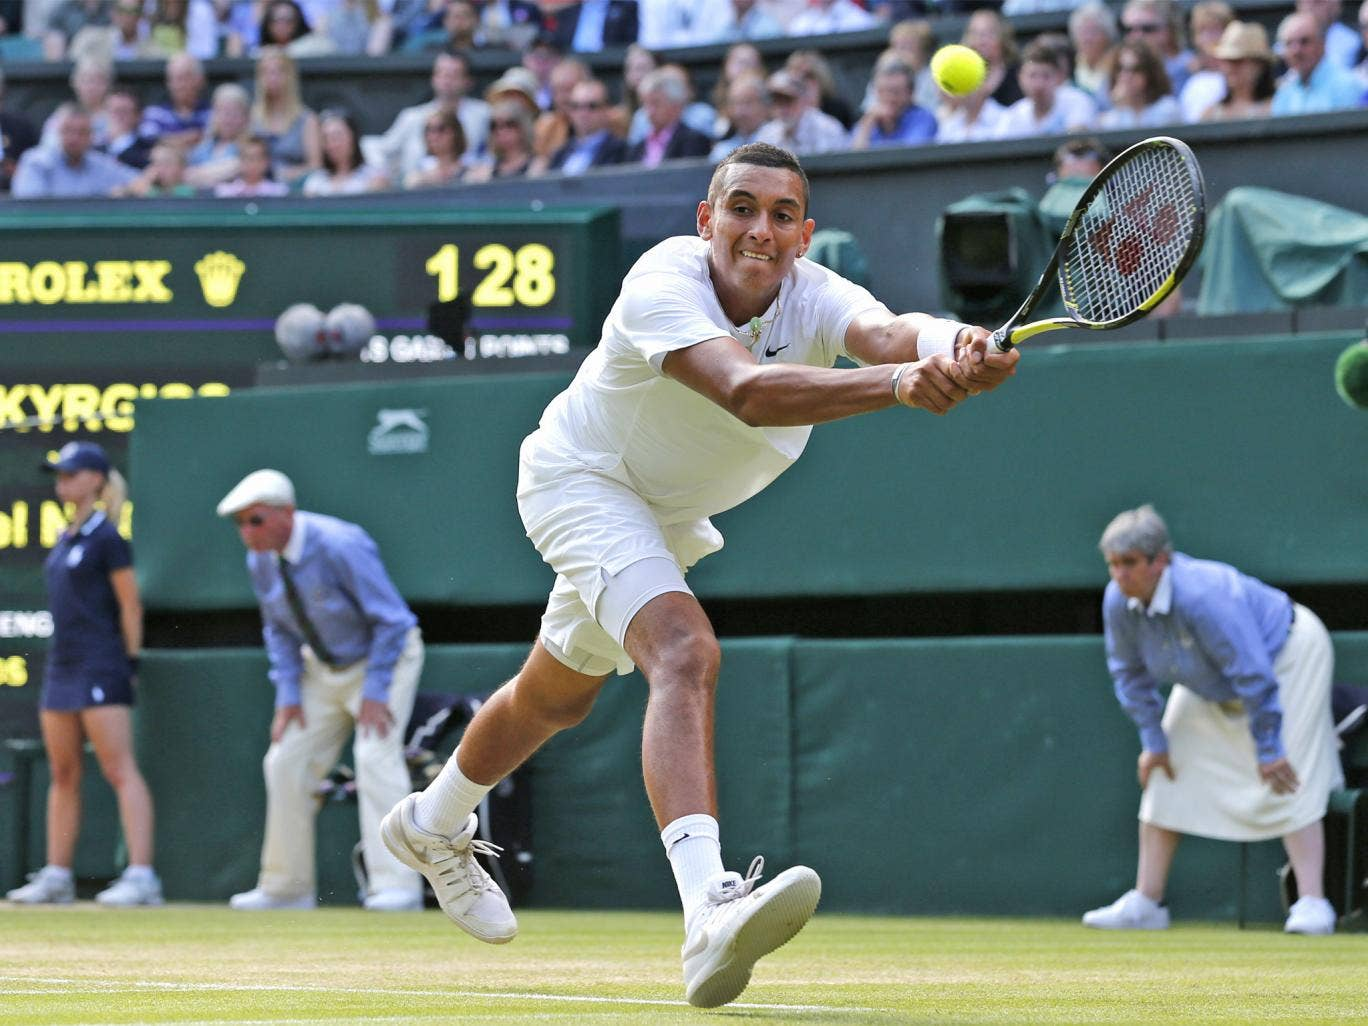 Nick Kyrgios stretches to play a return to Rafael Nadal in his remarkable upset victory